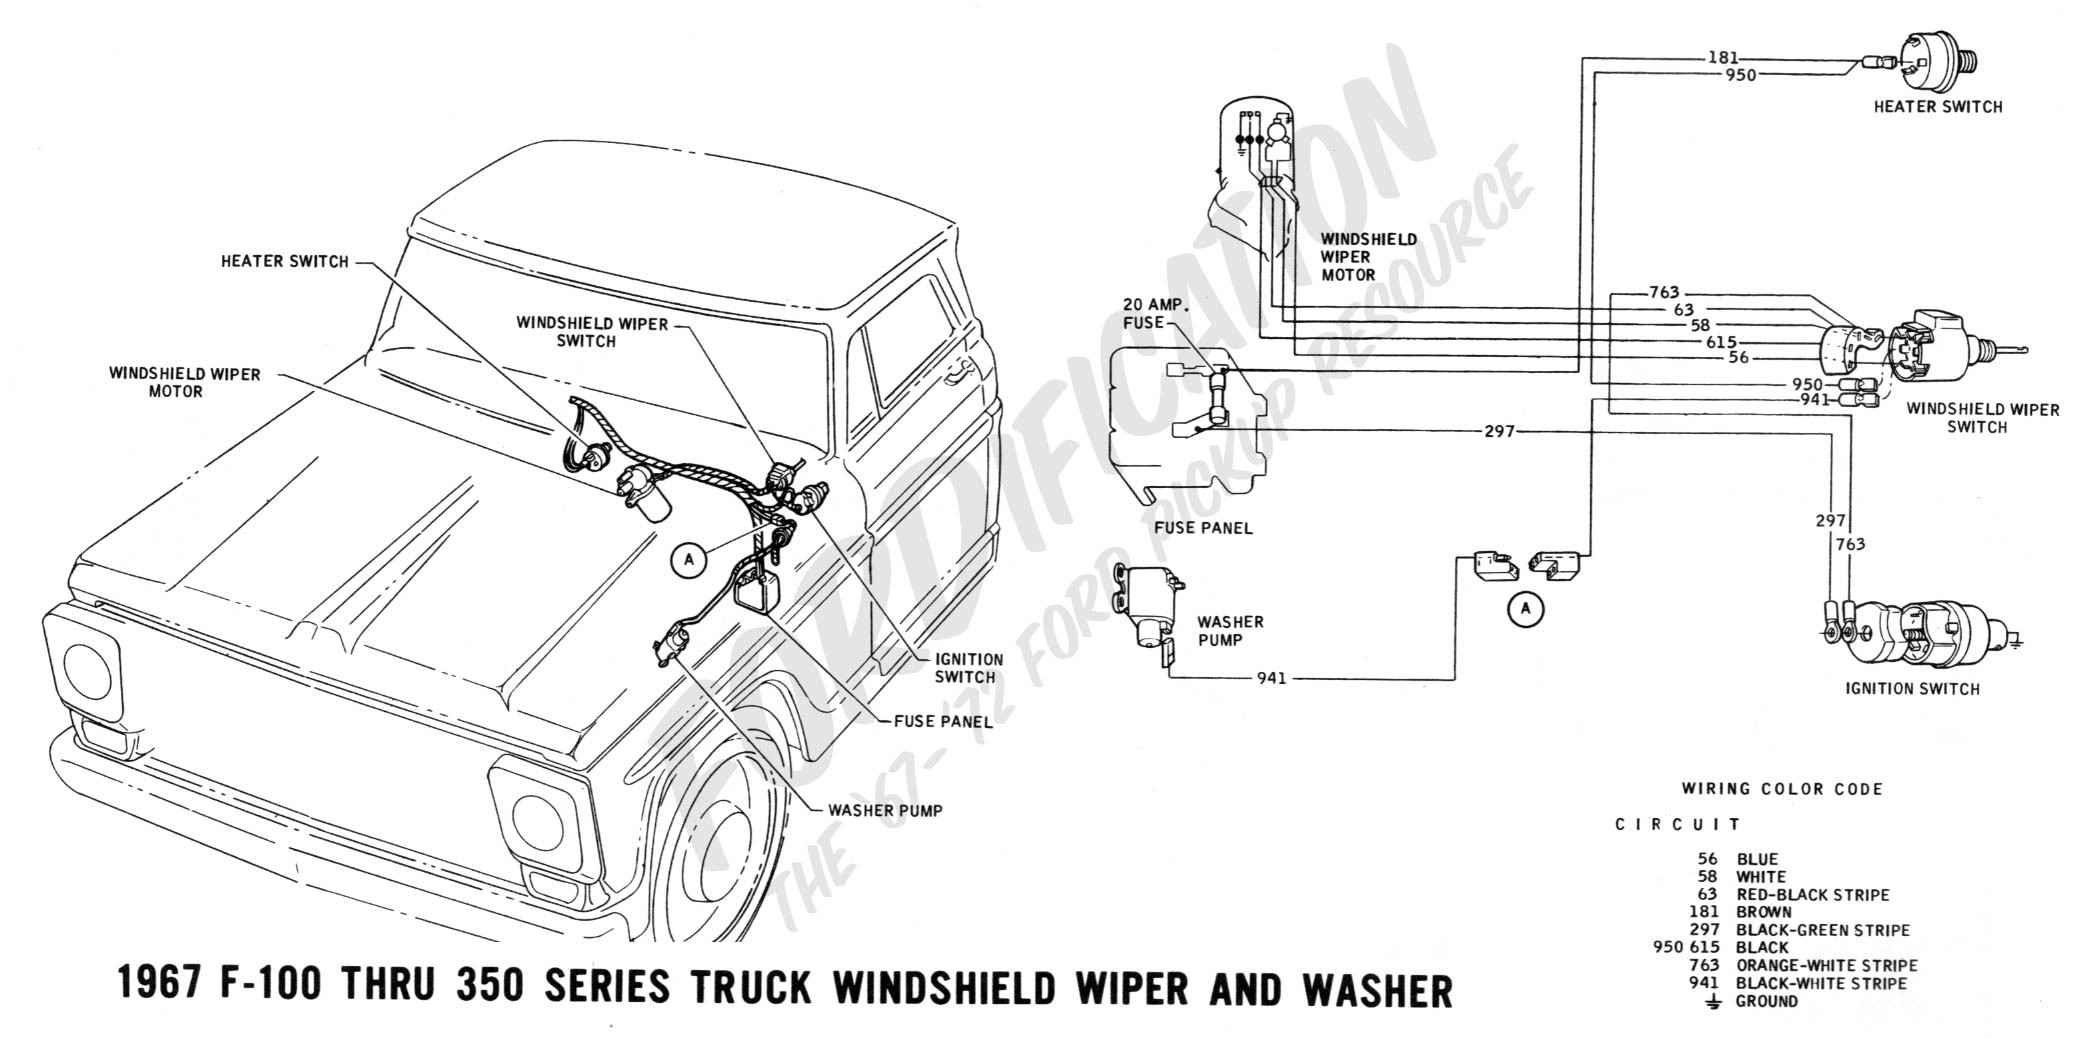 ... 1992 corvette windshield wiper motor wiring diagram trusted wiring rh  dafpods co 1985 Corvette ECM Wiring